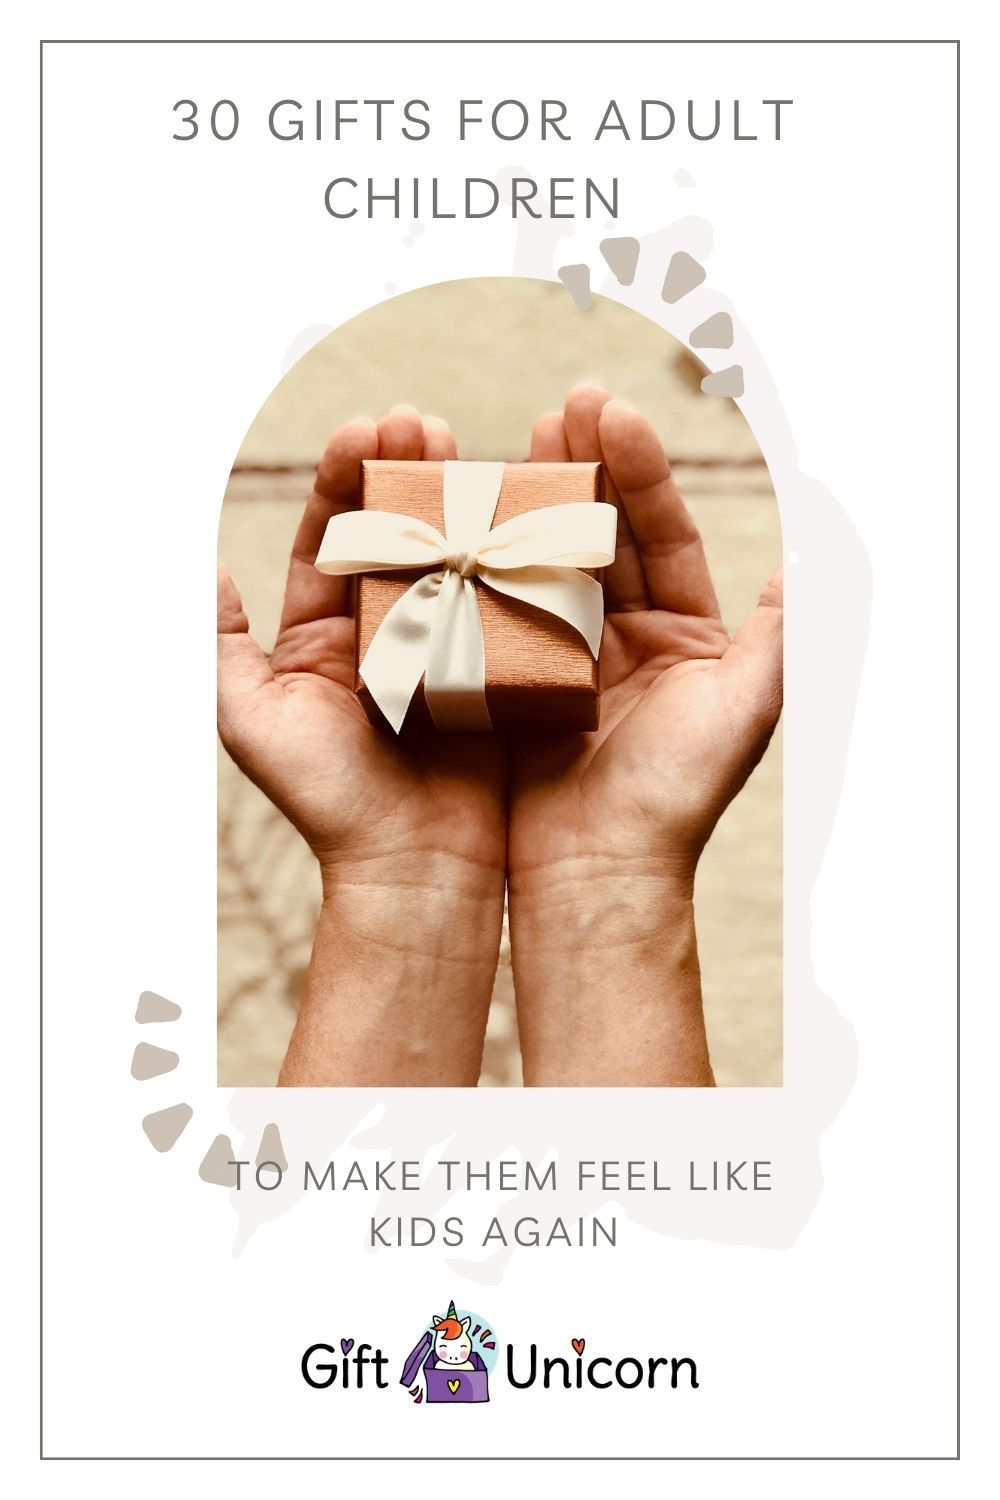 30 GIFTS for adult children pin image